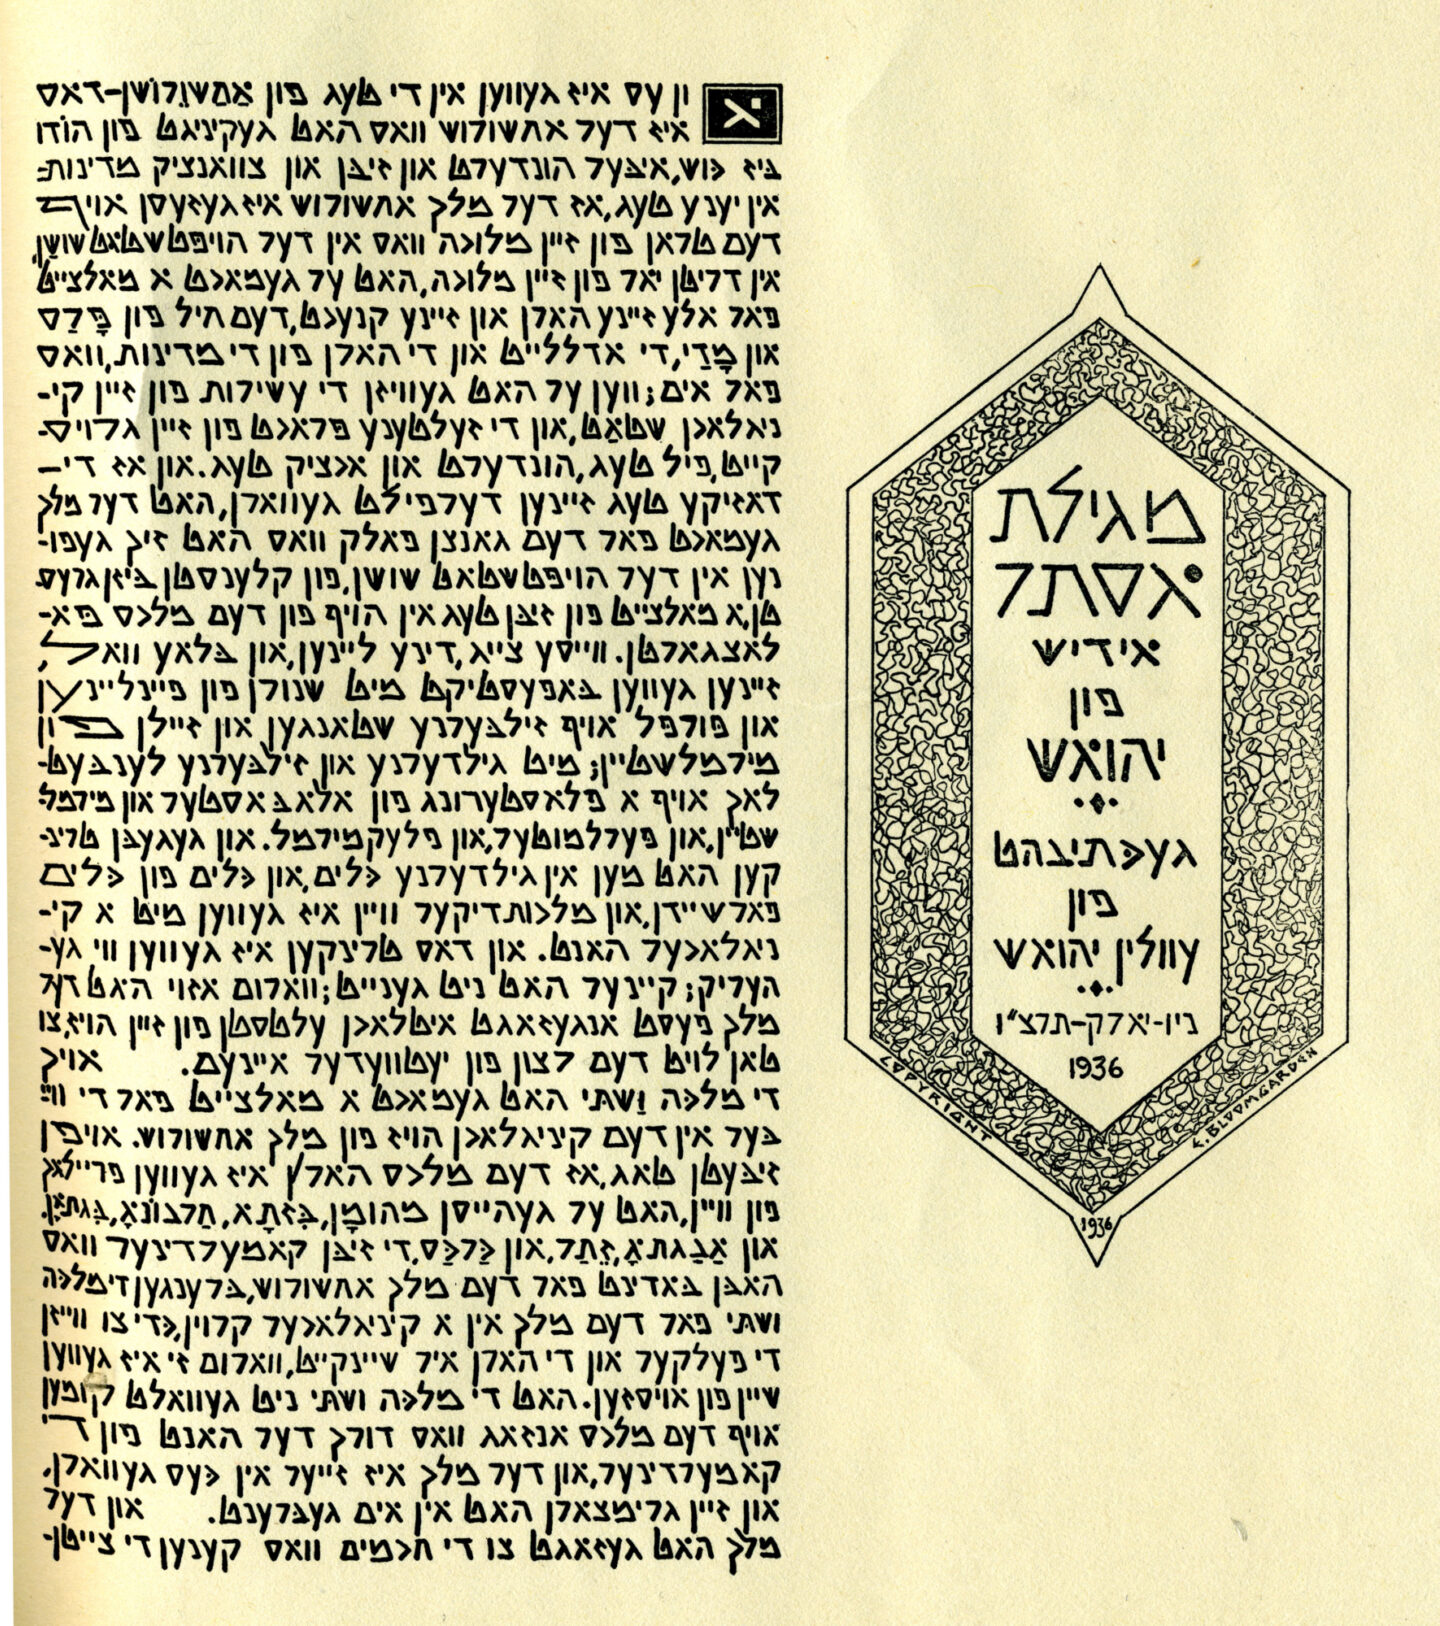 """<p><em>Megiles Ester</em>, translated into Yiddish by Yehoash, calligraphy by Evelyn Yehoash, published in New York in <span class=""""numbers"""">1936</span>. Image courtesy of the Yeshiva University&nbsp;Museum.</p>"""